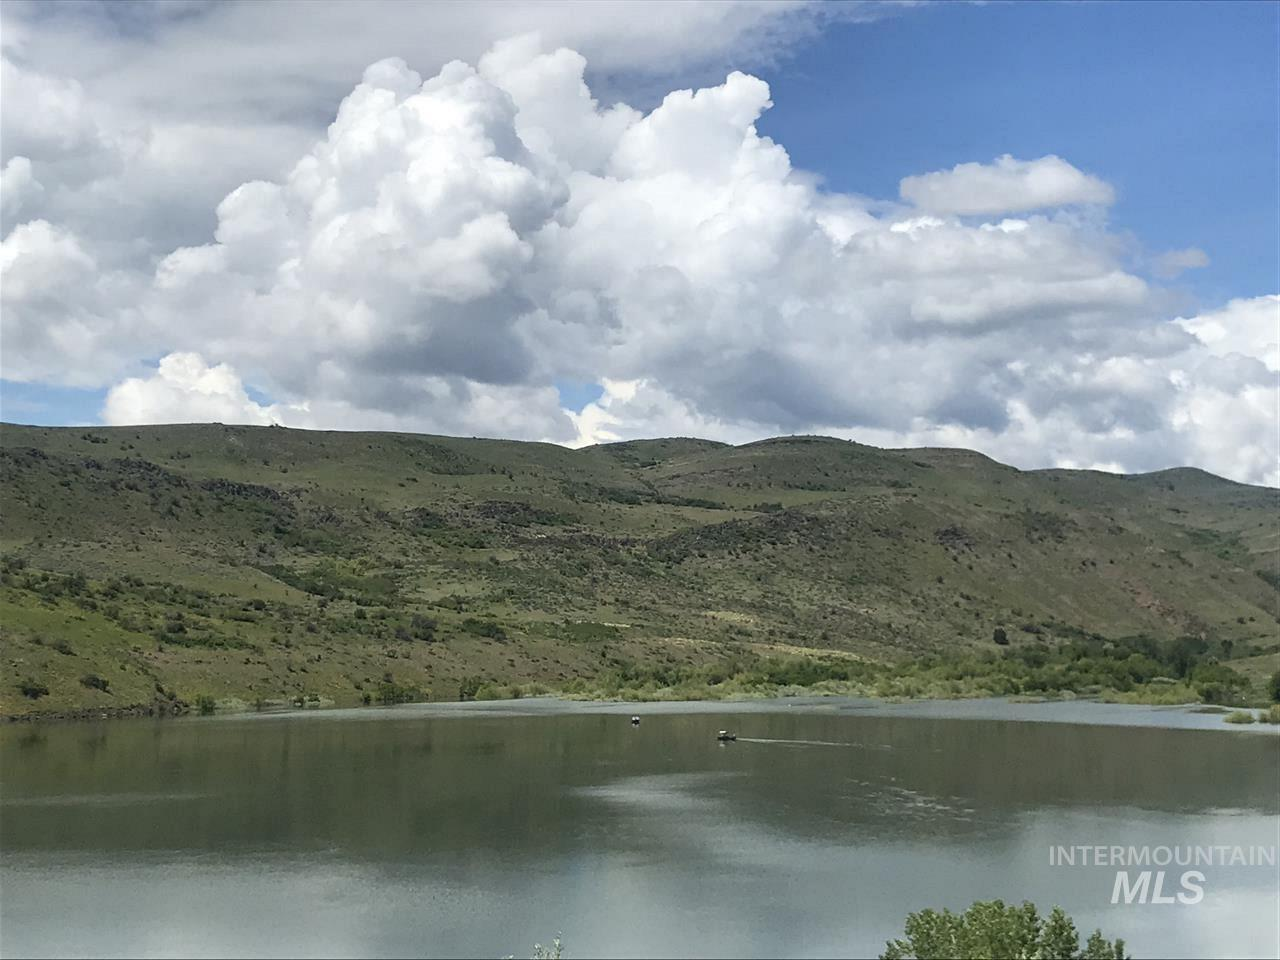 TBD Mann Creek, Weiser, Idaho 83672, Land For Sale, Price $60,000, 98730954